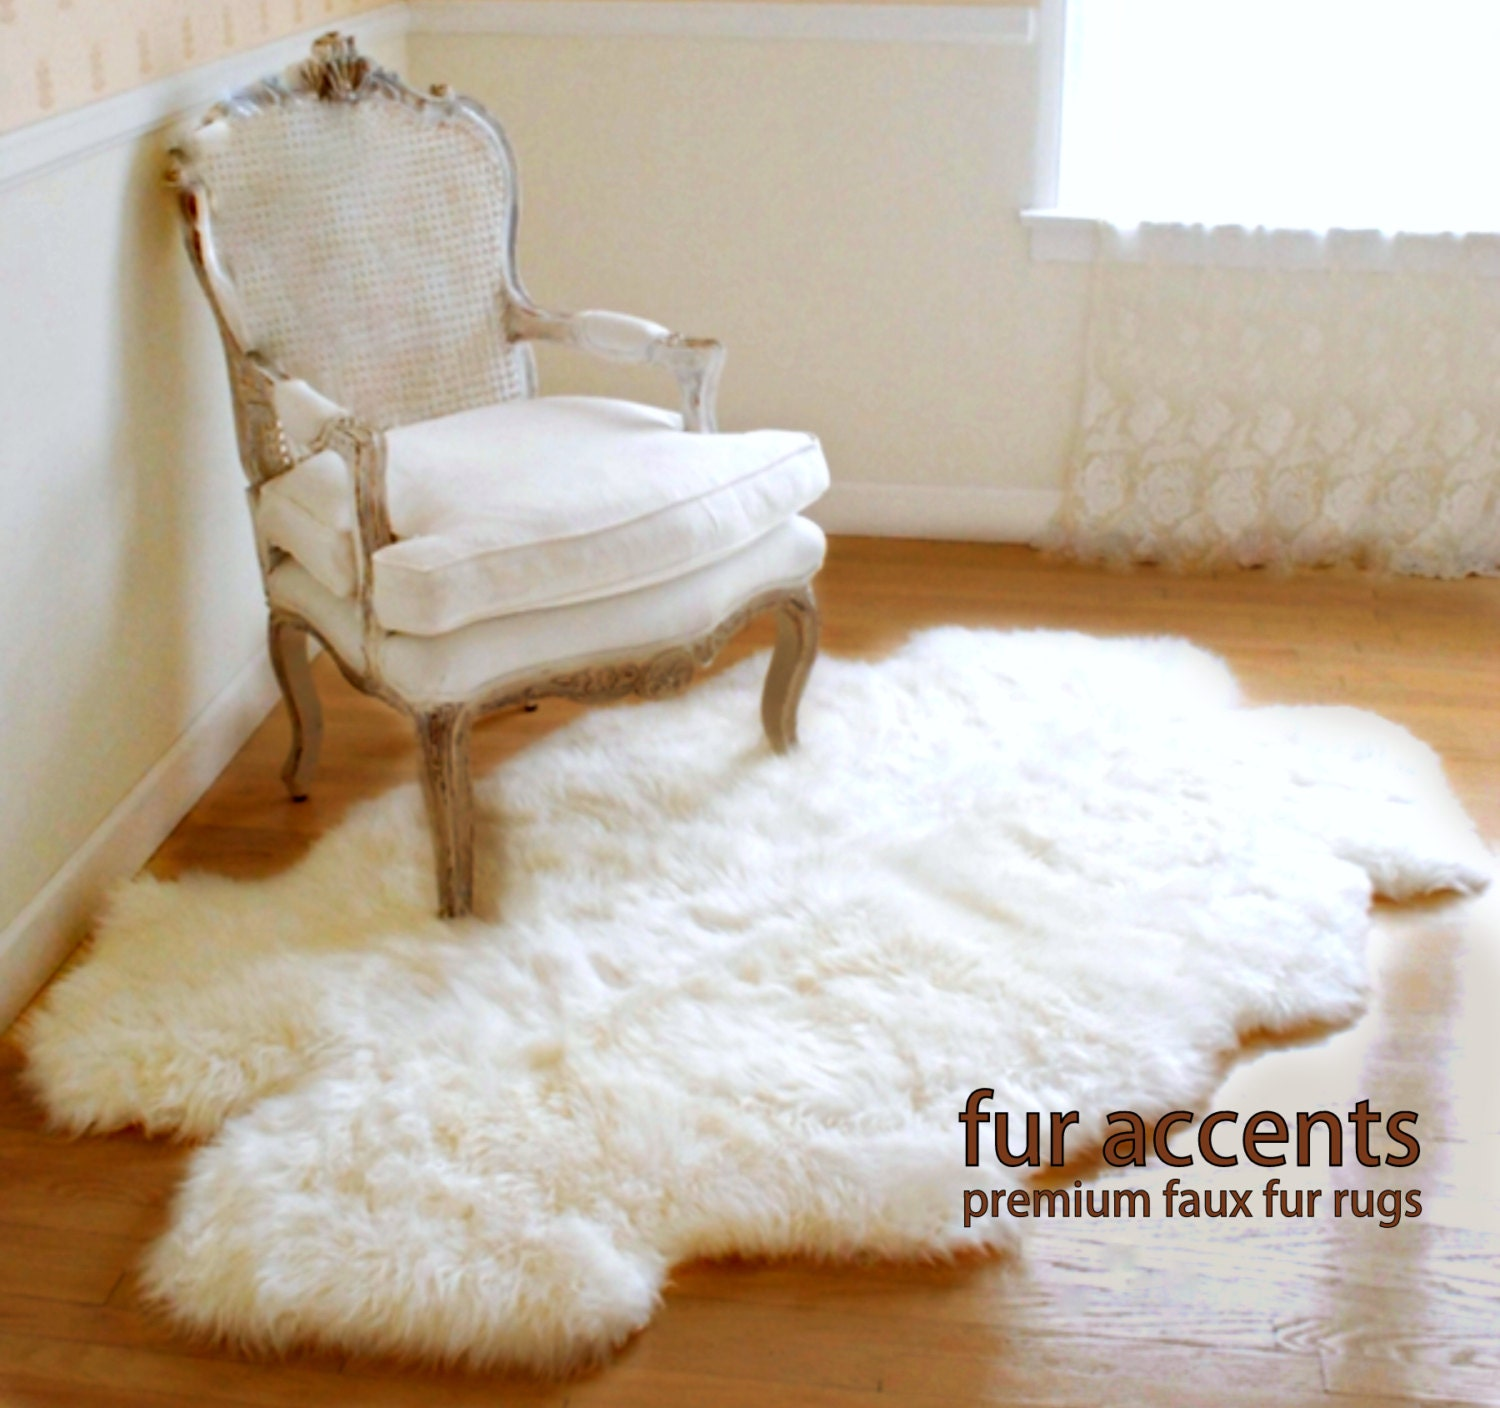 quattro throw sheepskin accents plush listing rugs area zoom il fur fullxfull carpet rug flgp